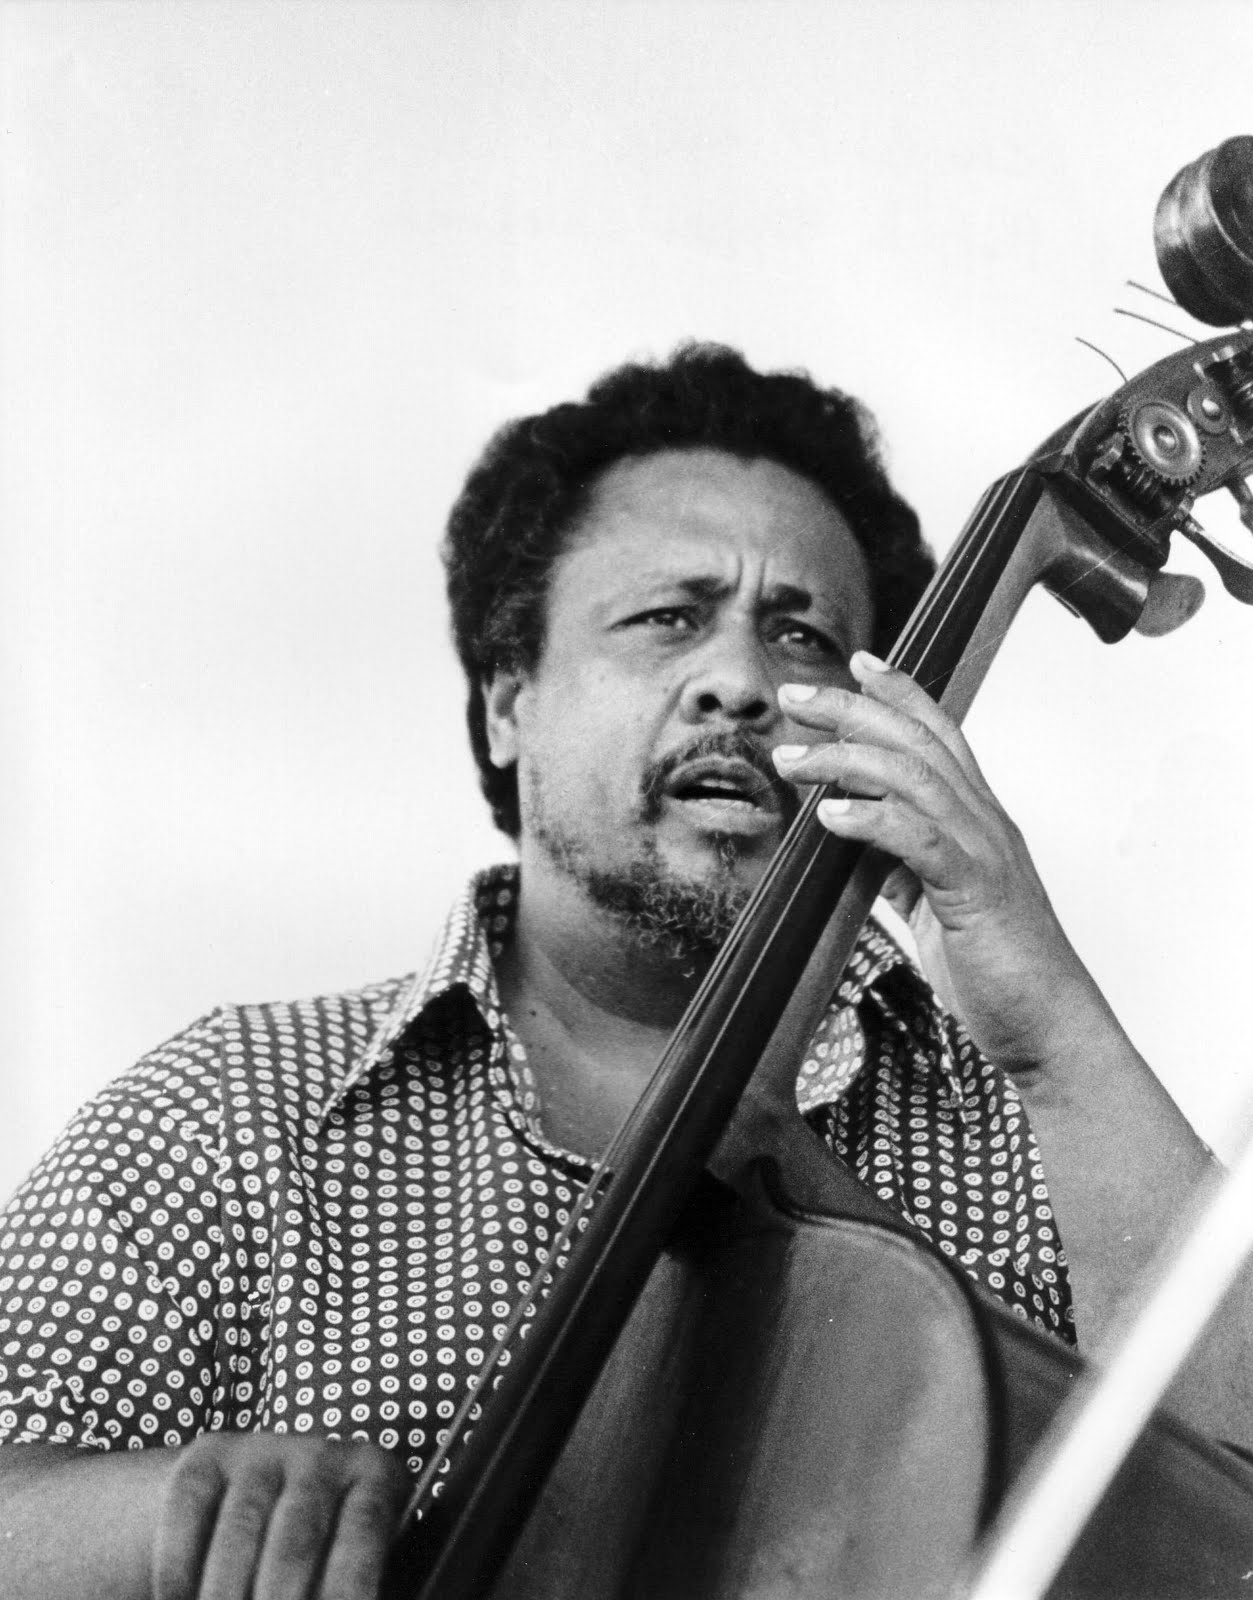 charles mingus 1922-1979 charles mingus fused musical styles drawn from classical, swing, bop, latin, and avant-garde genres to develop a wholly original form of composition in performance, his bass.